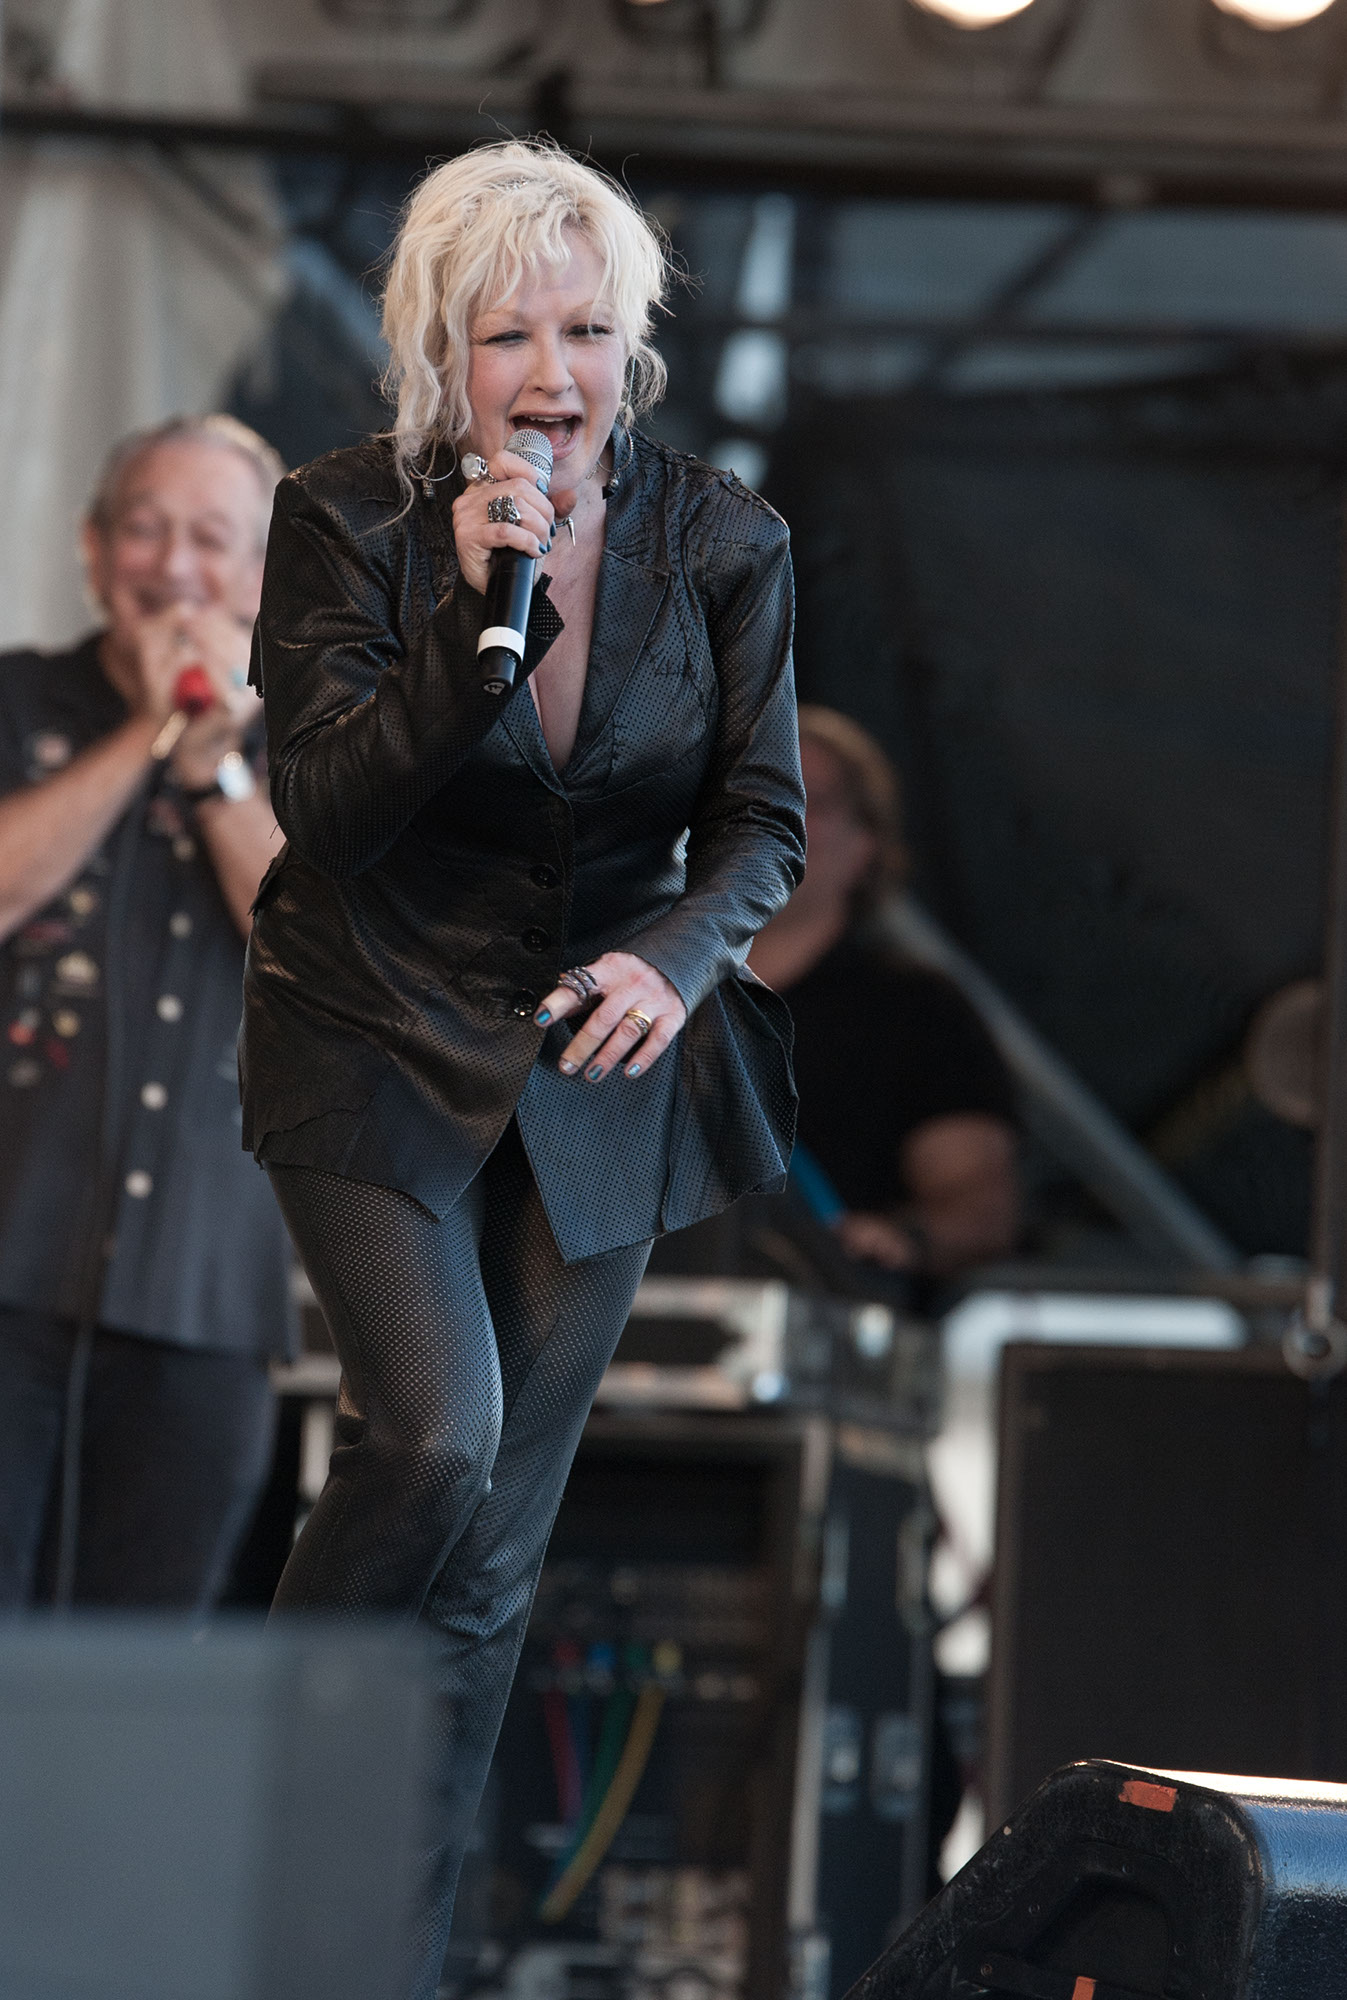 Cindy Lauper and Charlie Musselwhite